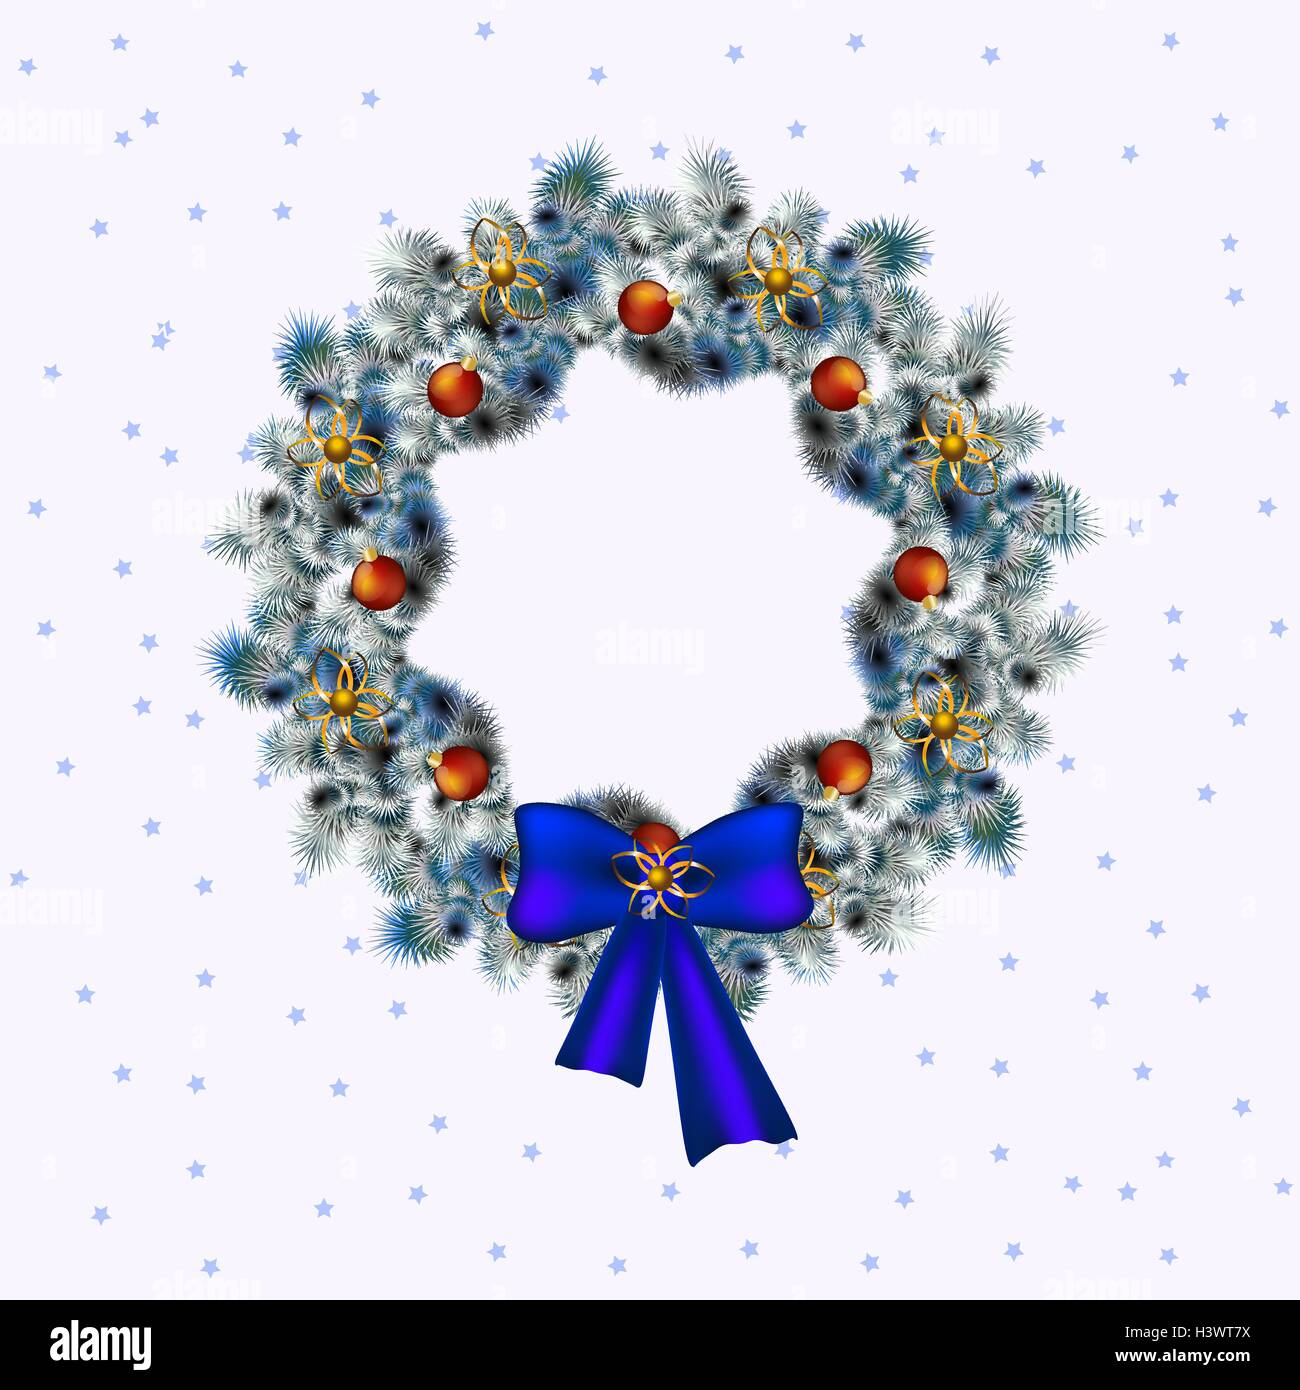 Christmas blue and white wreath, christmas deko in blue accents ,white background, vector - Stock Image